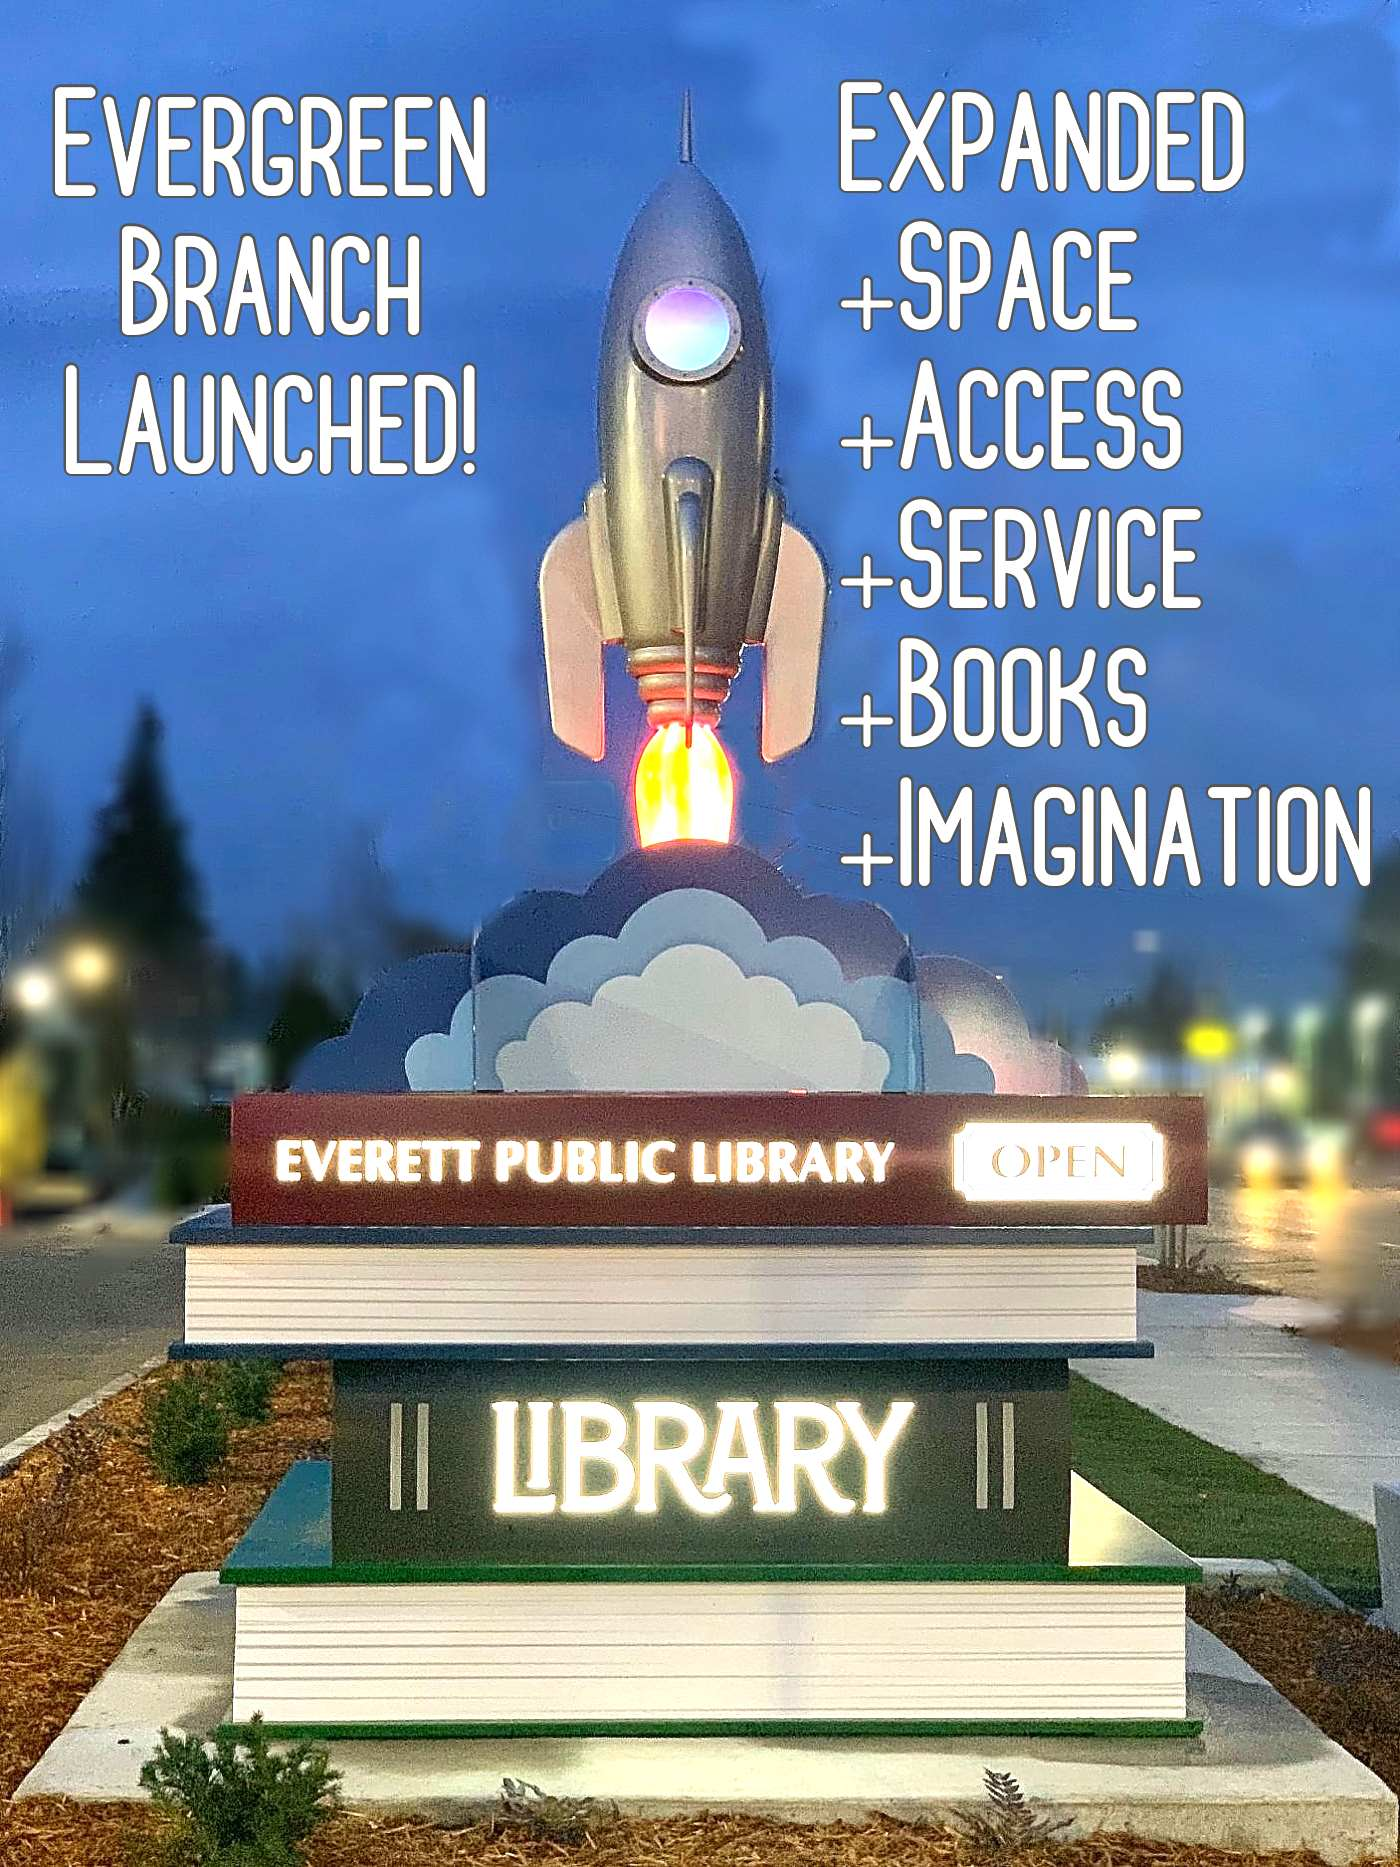 Evergreen Branch has launched with expanded space, access, service, books and imagination.